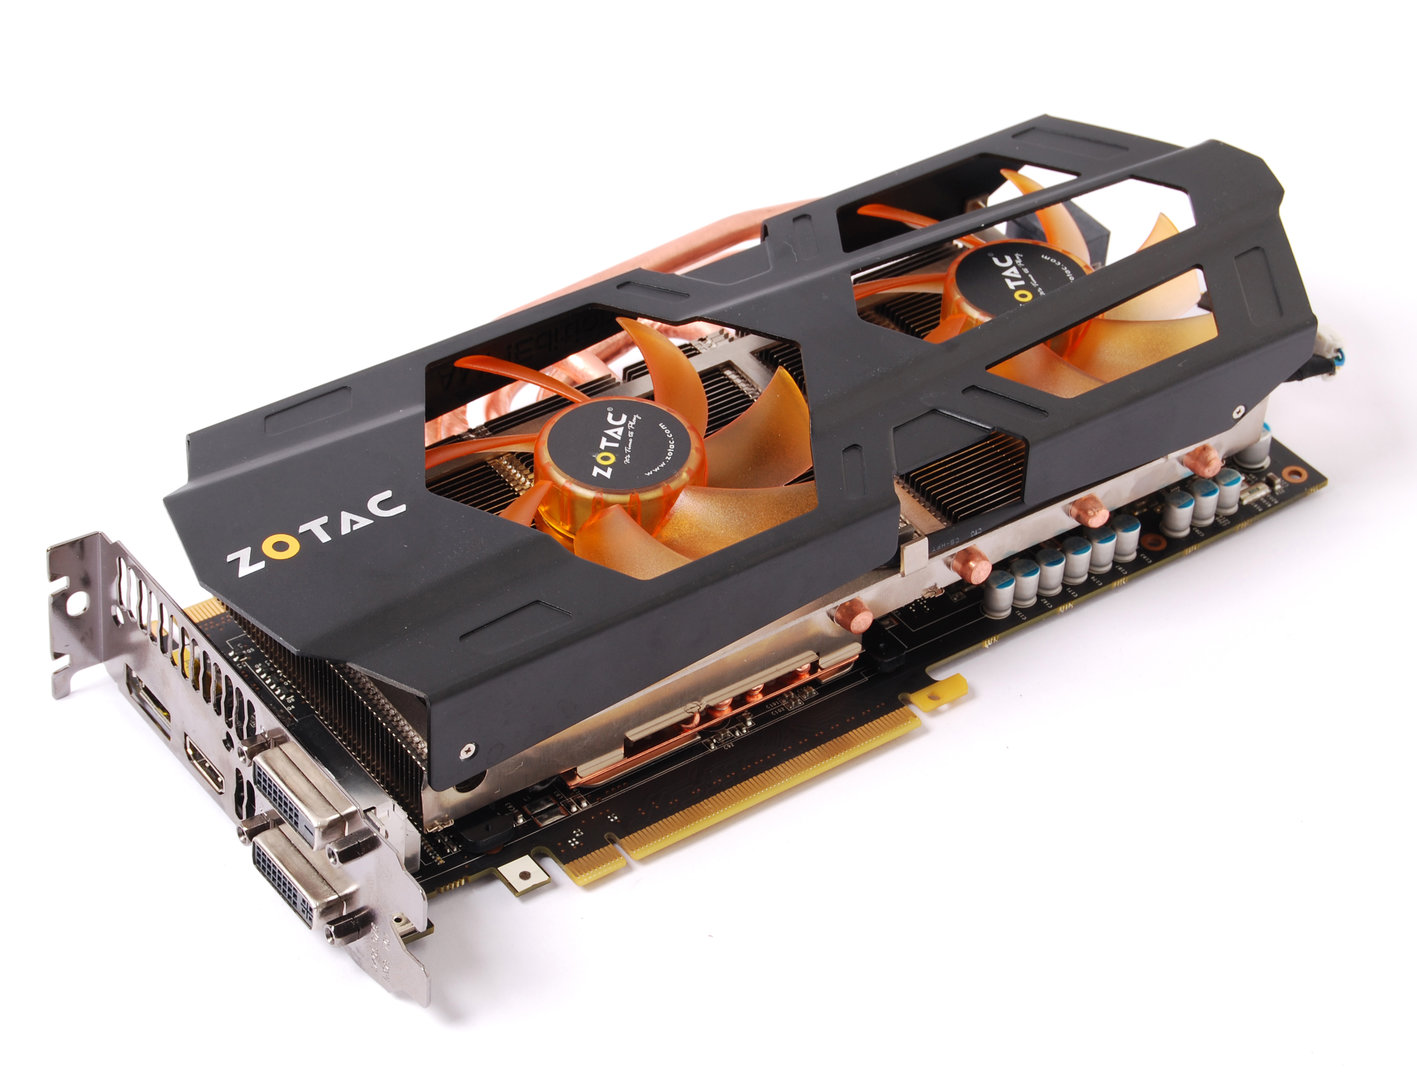 Zotac GeForce GTX 680 AMP! Edition